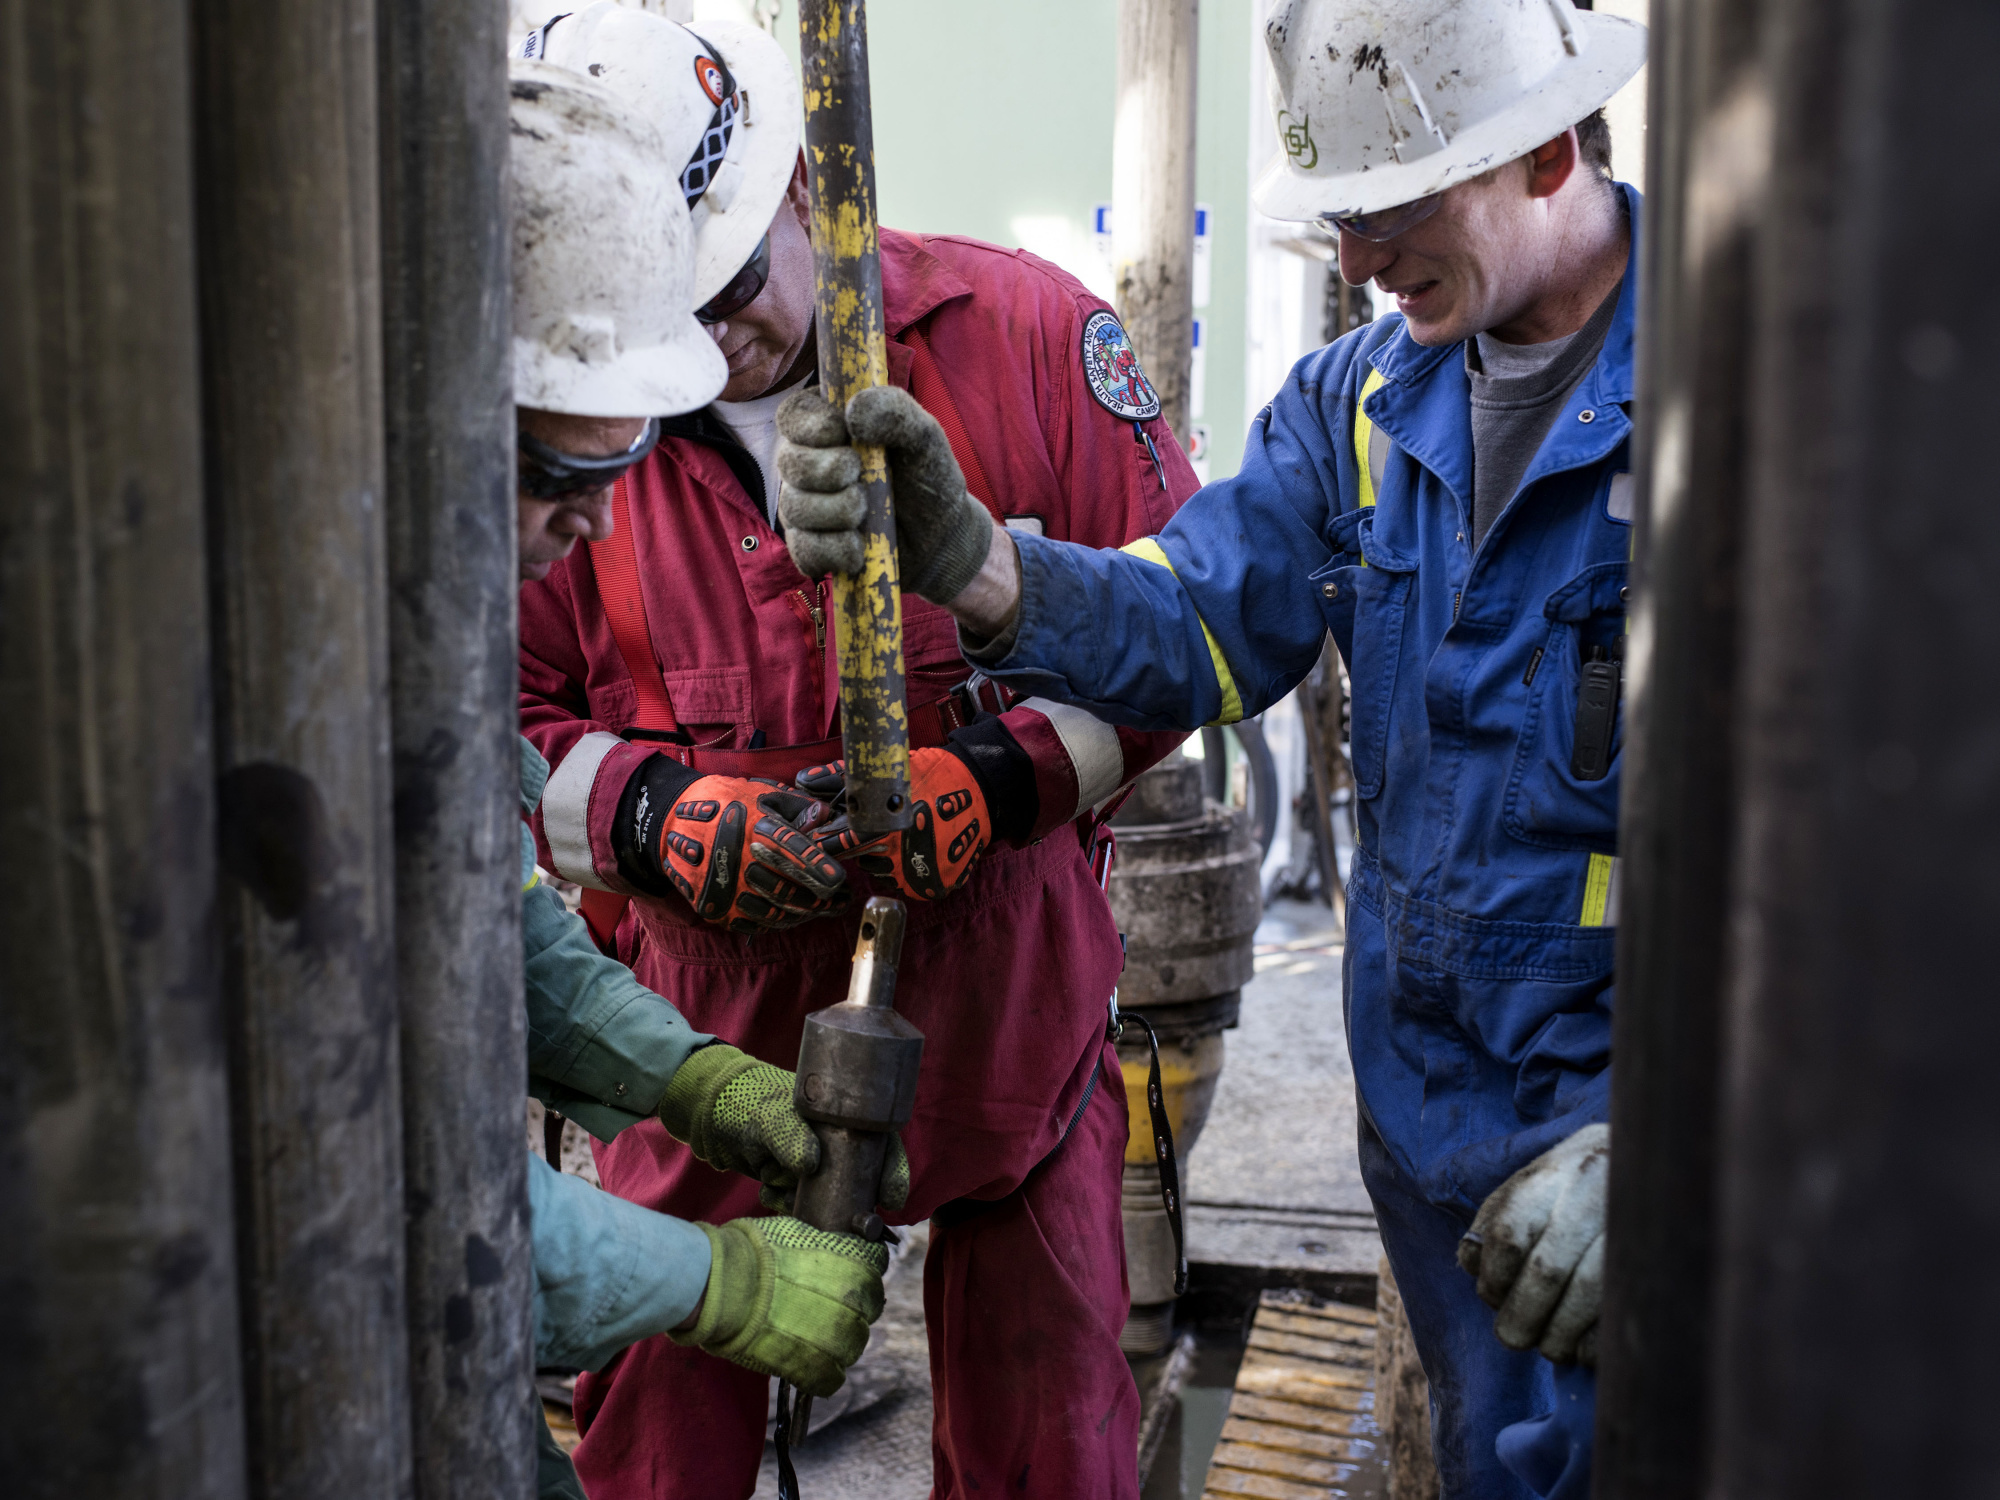 Precision Drilling oil rig operators install a bit guide on the floor of a Royal Dutch Shell Plc oil rig near Mentone, Texas, U.S., on Thursday, March 2, 2017. Photographer: Matthew Busch/Bloomberg